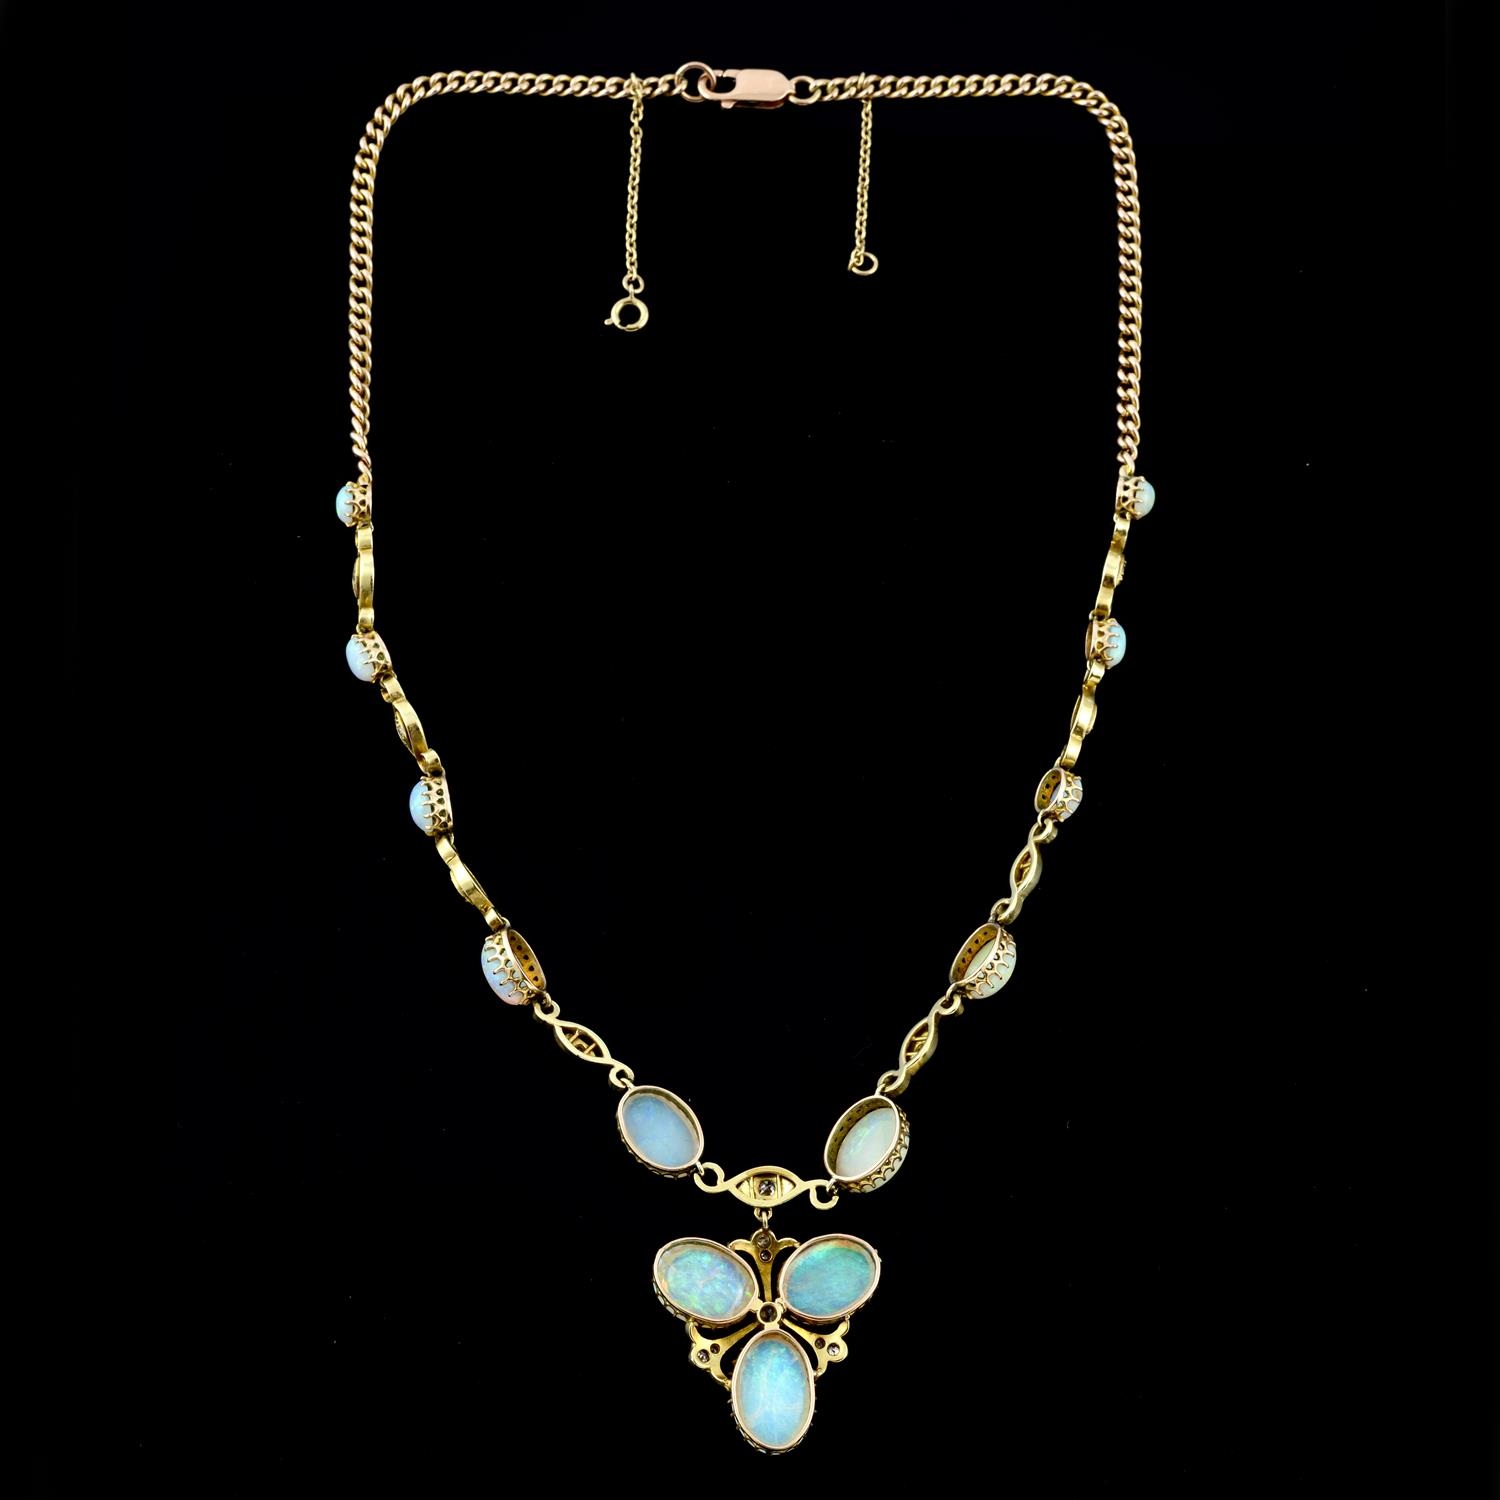 An early 20th century gold opal and diamond necklace, with later back chain. - Image 4 of 5